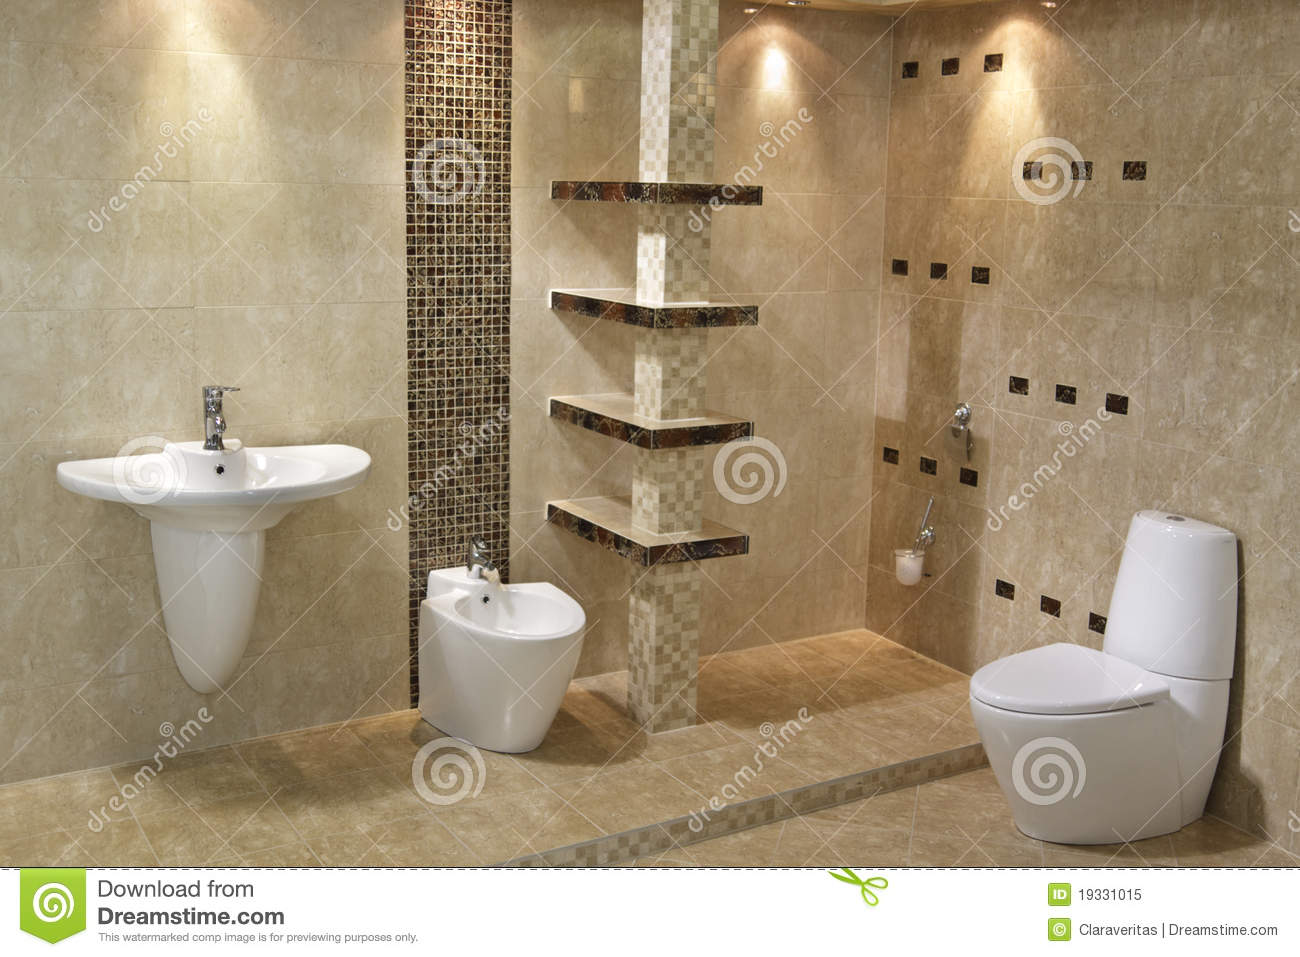 Minimalist Bathroom Interior Minimalist Bathroom Interior Royalty Free Stock Photo Image